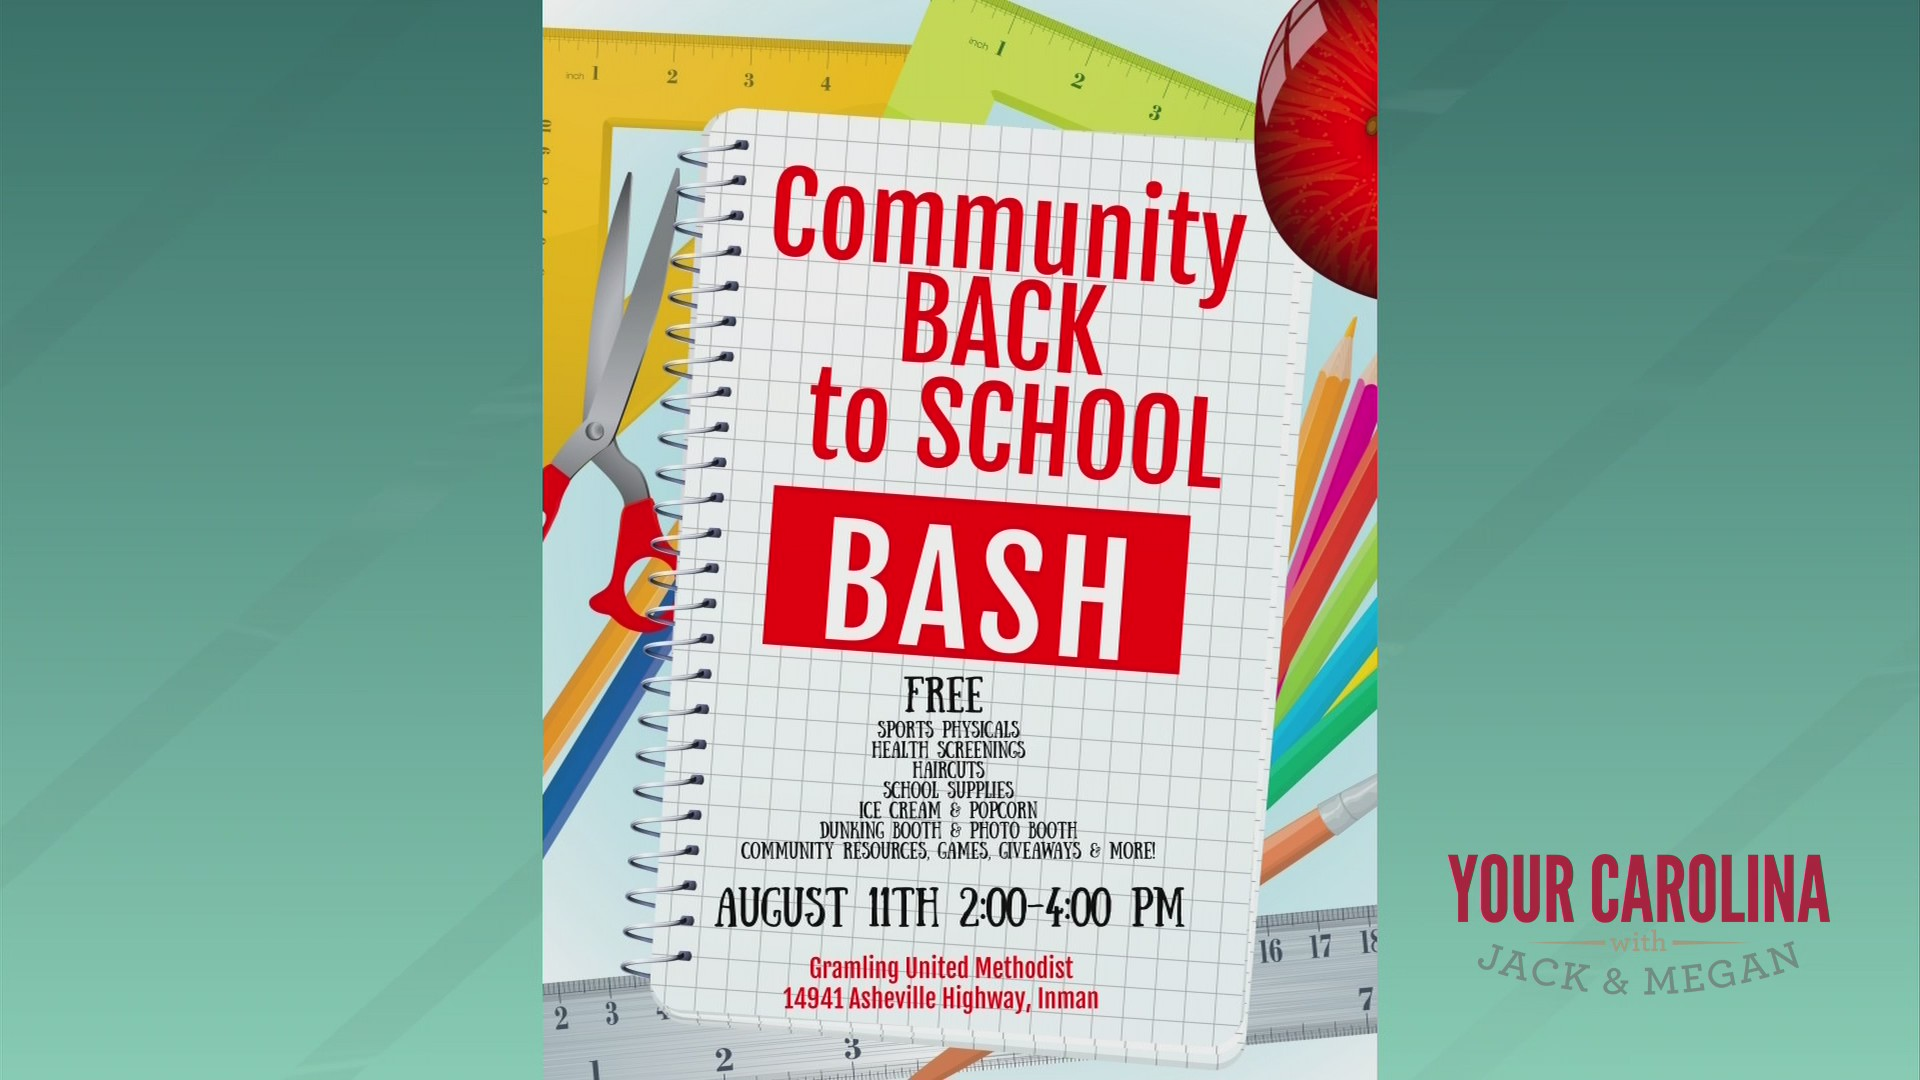 Community Back to School Bash